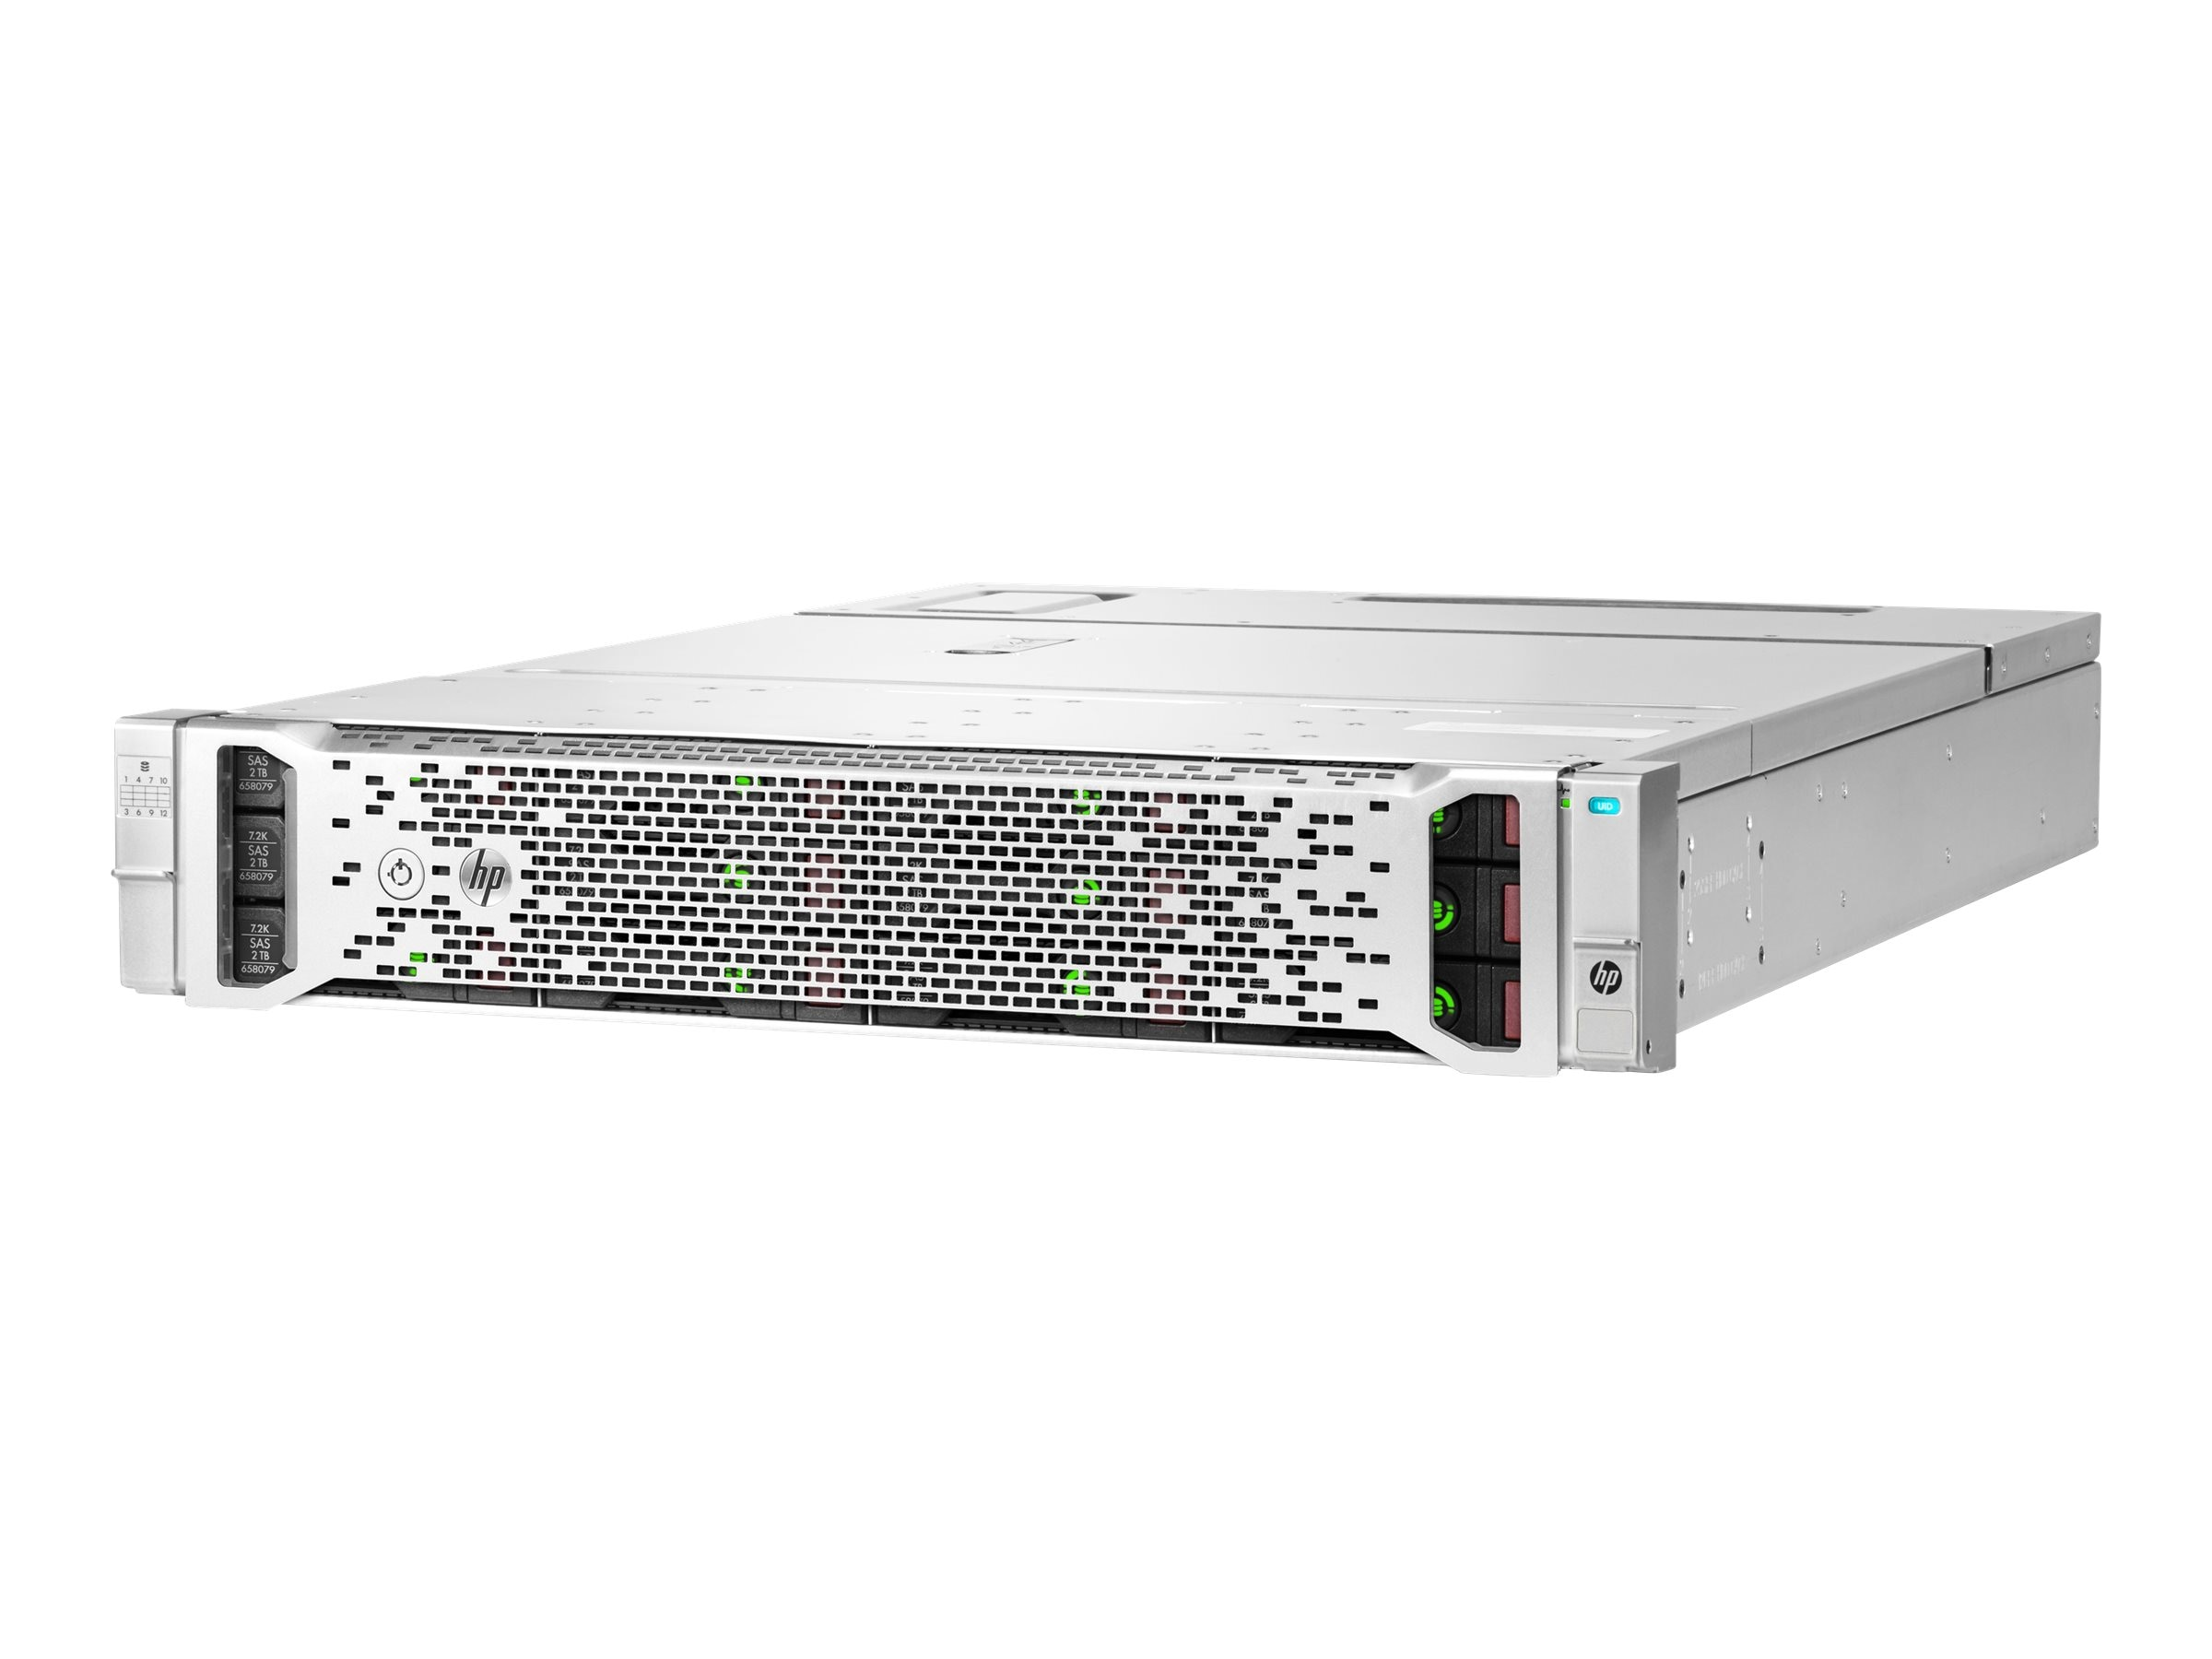 HPE D3600 Disk Storage System w  (12) 8TB SAS 12Gb s 7.2K RPM LFF 3.5 Midline Smart Carrier Hard Drives, M0S82A